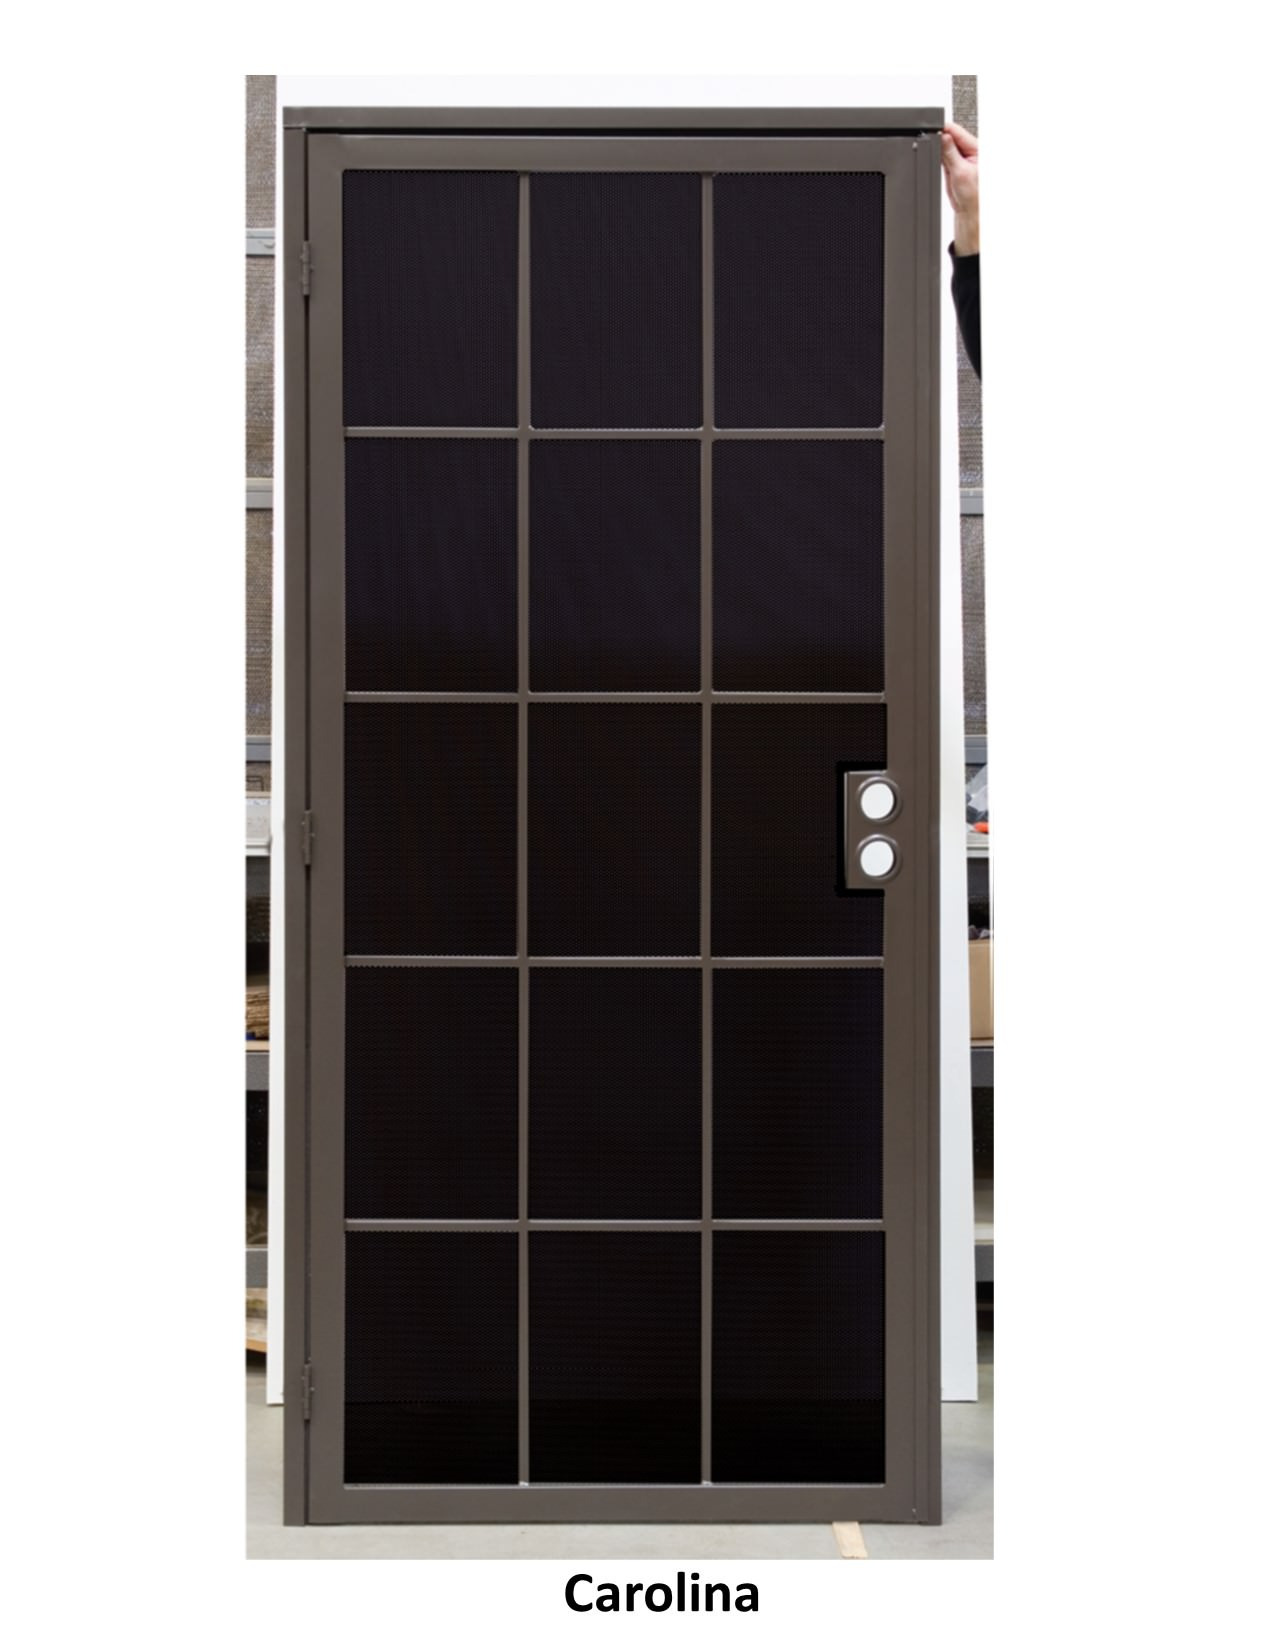 Security doors screens 4 less for Security window screens